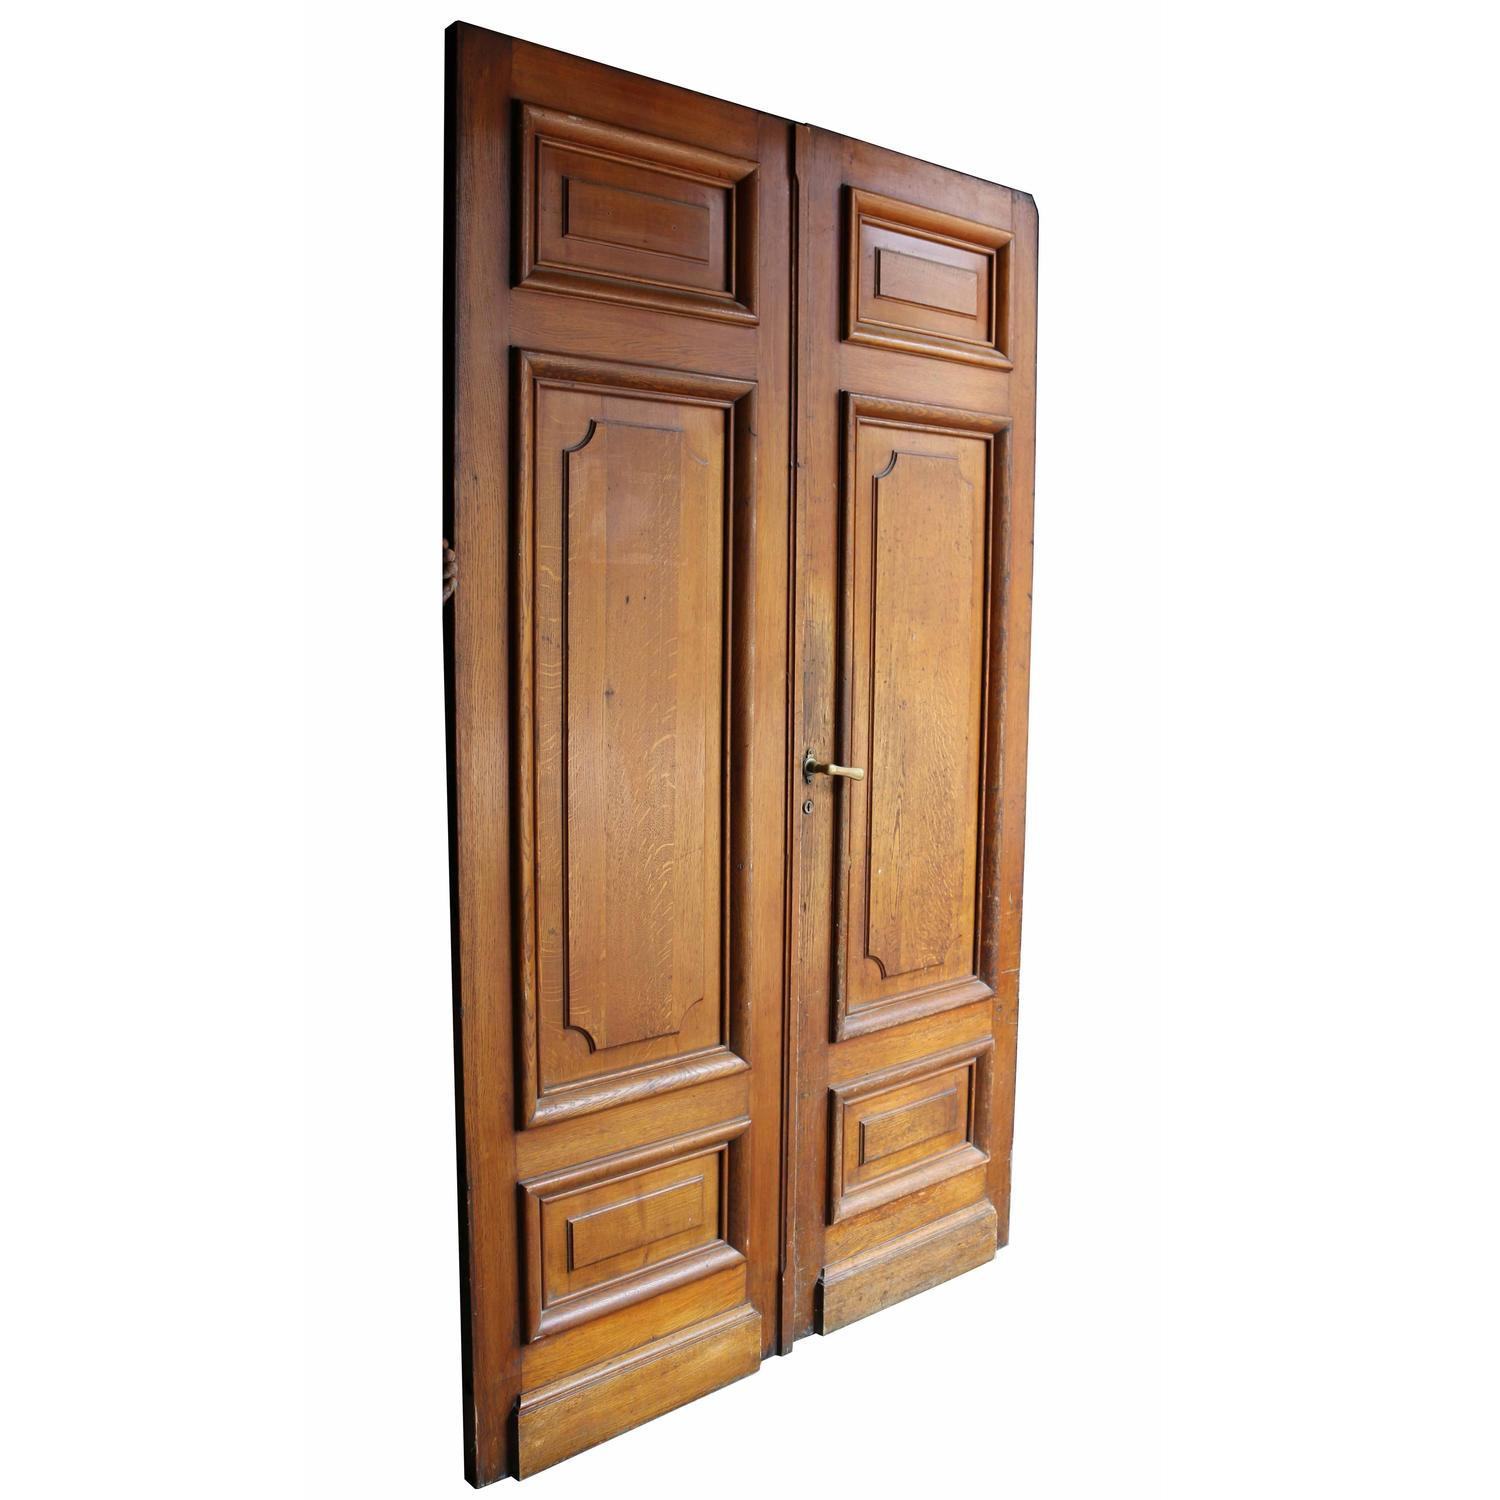 Pair of antique exterior oak double doors for sale at 1stdibs for Exterior double french doors for sale